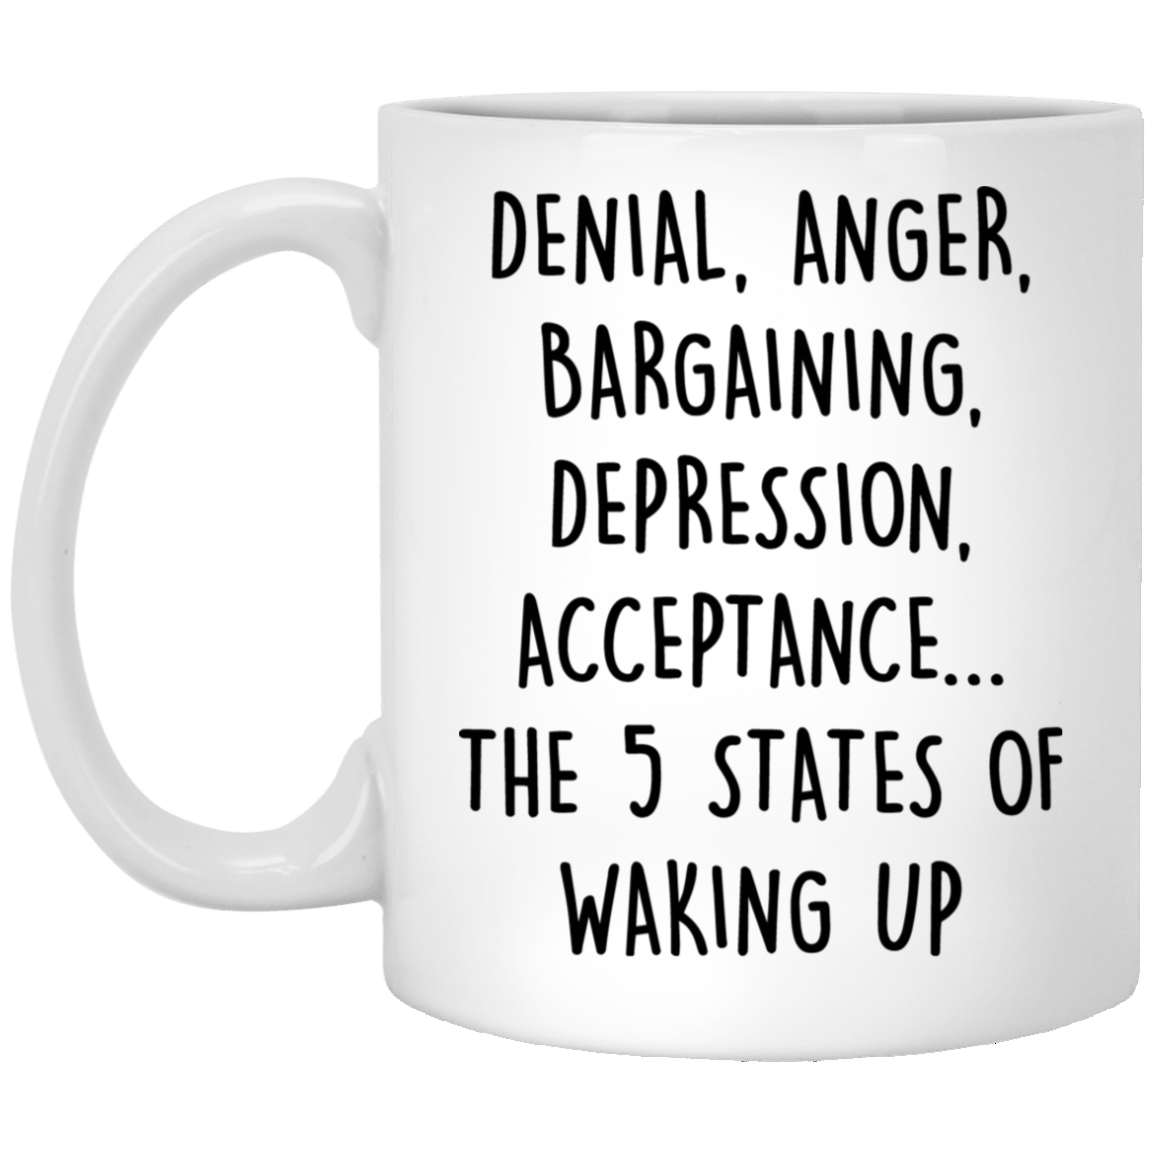 Denial anger bargaining depression acceptance the 5 states of waking up Funny Quotes Coffee Mug 99promocode